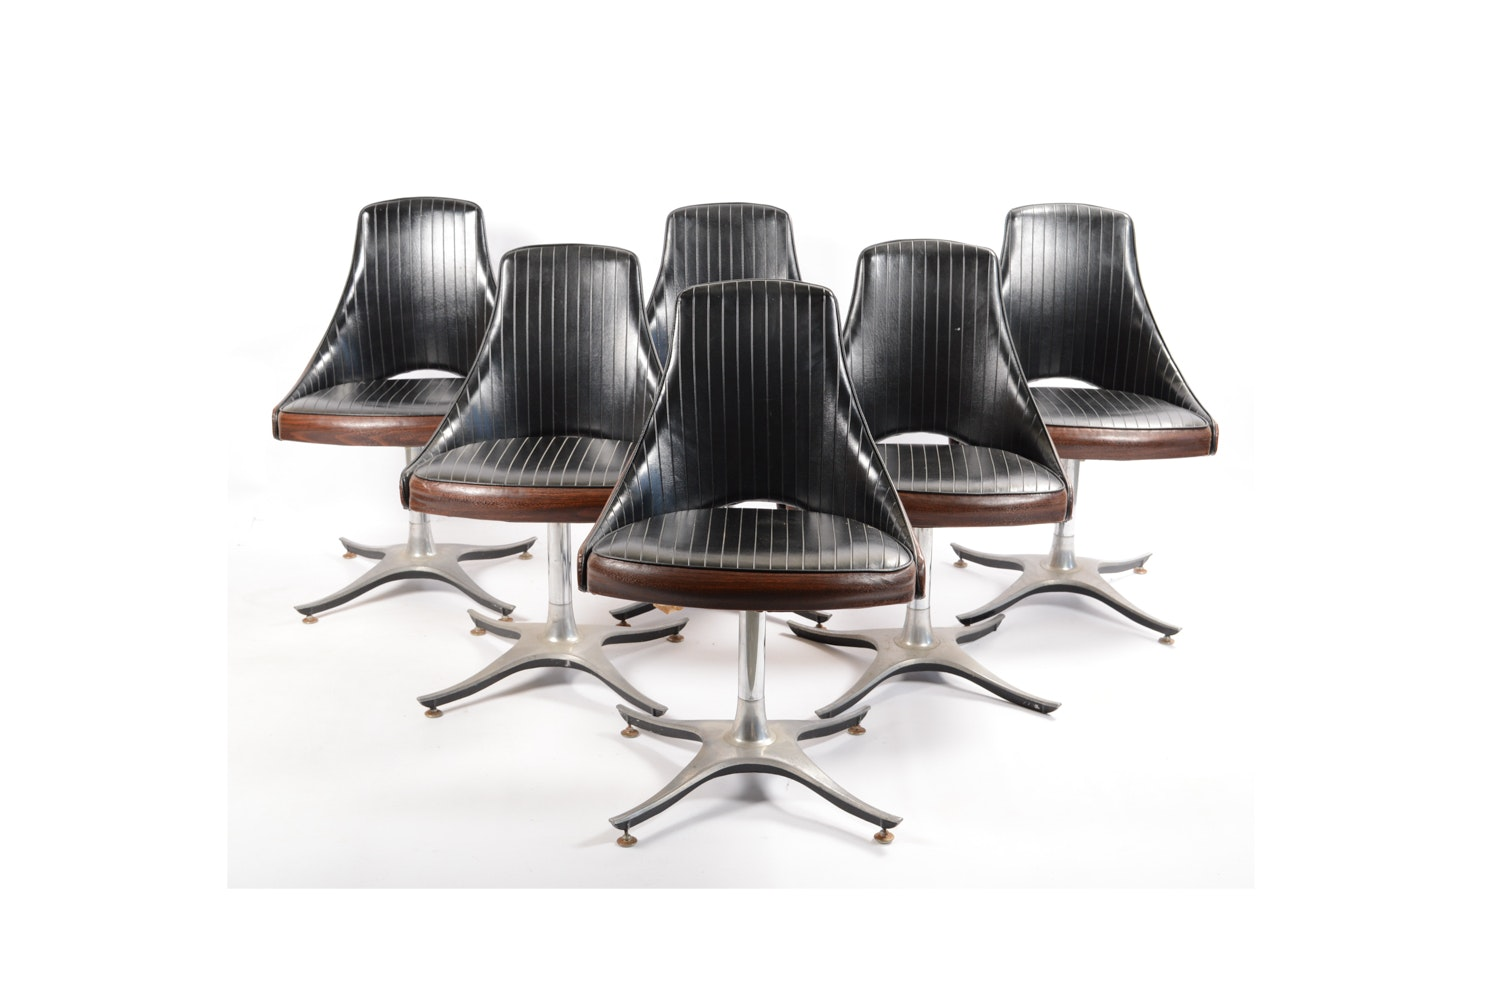 Six Mid Century Modern Swivel Dining Chairs by Roper Corporation